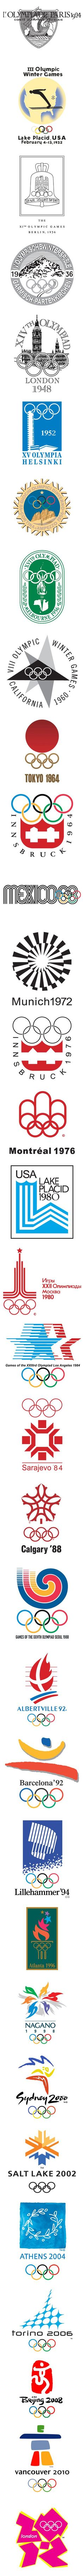 100 years of Olympic logos